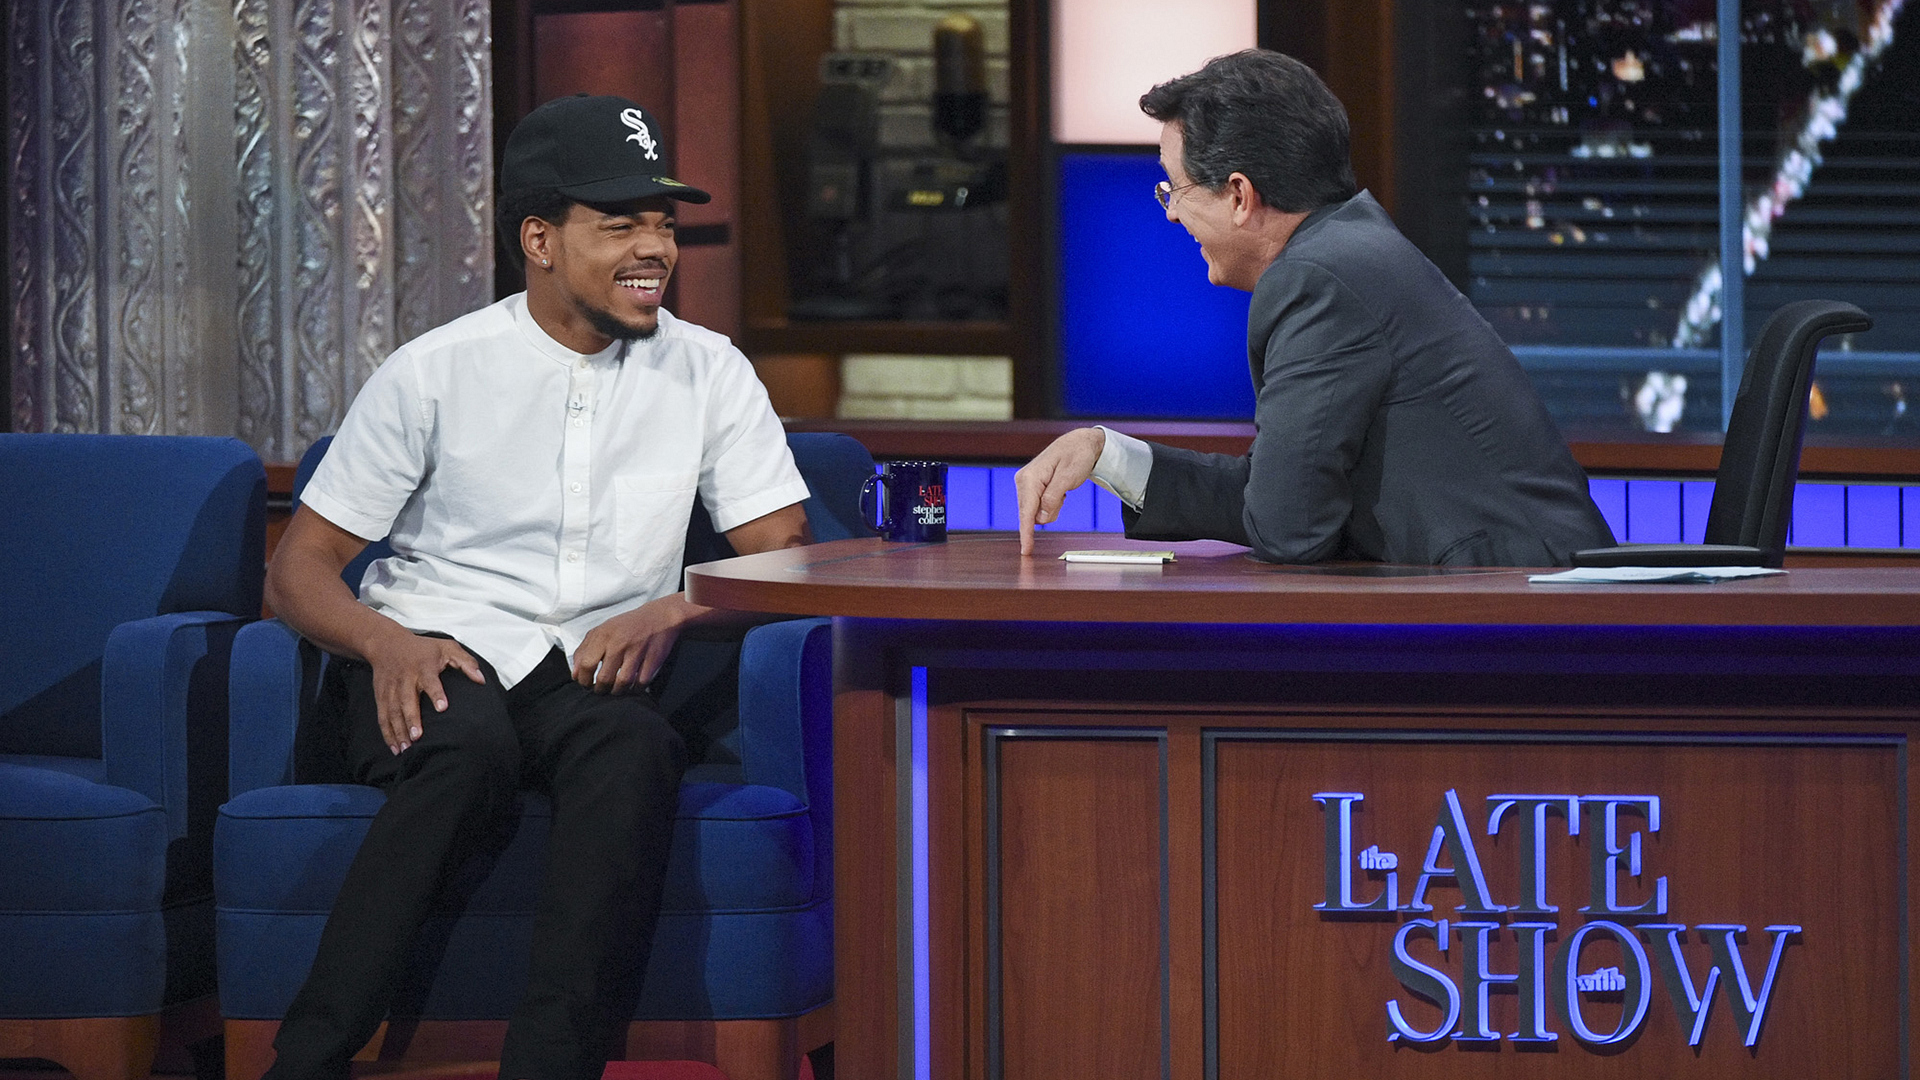 Chance the Rapper and Stephen Colbert